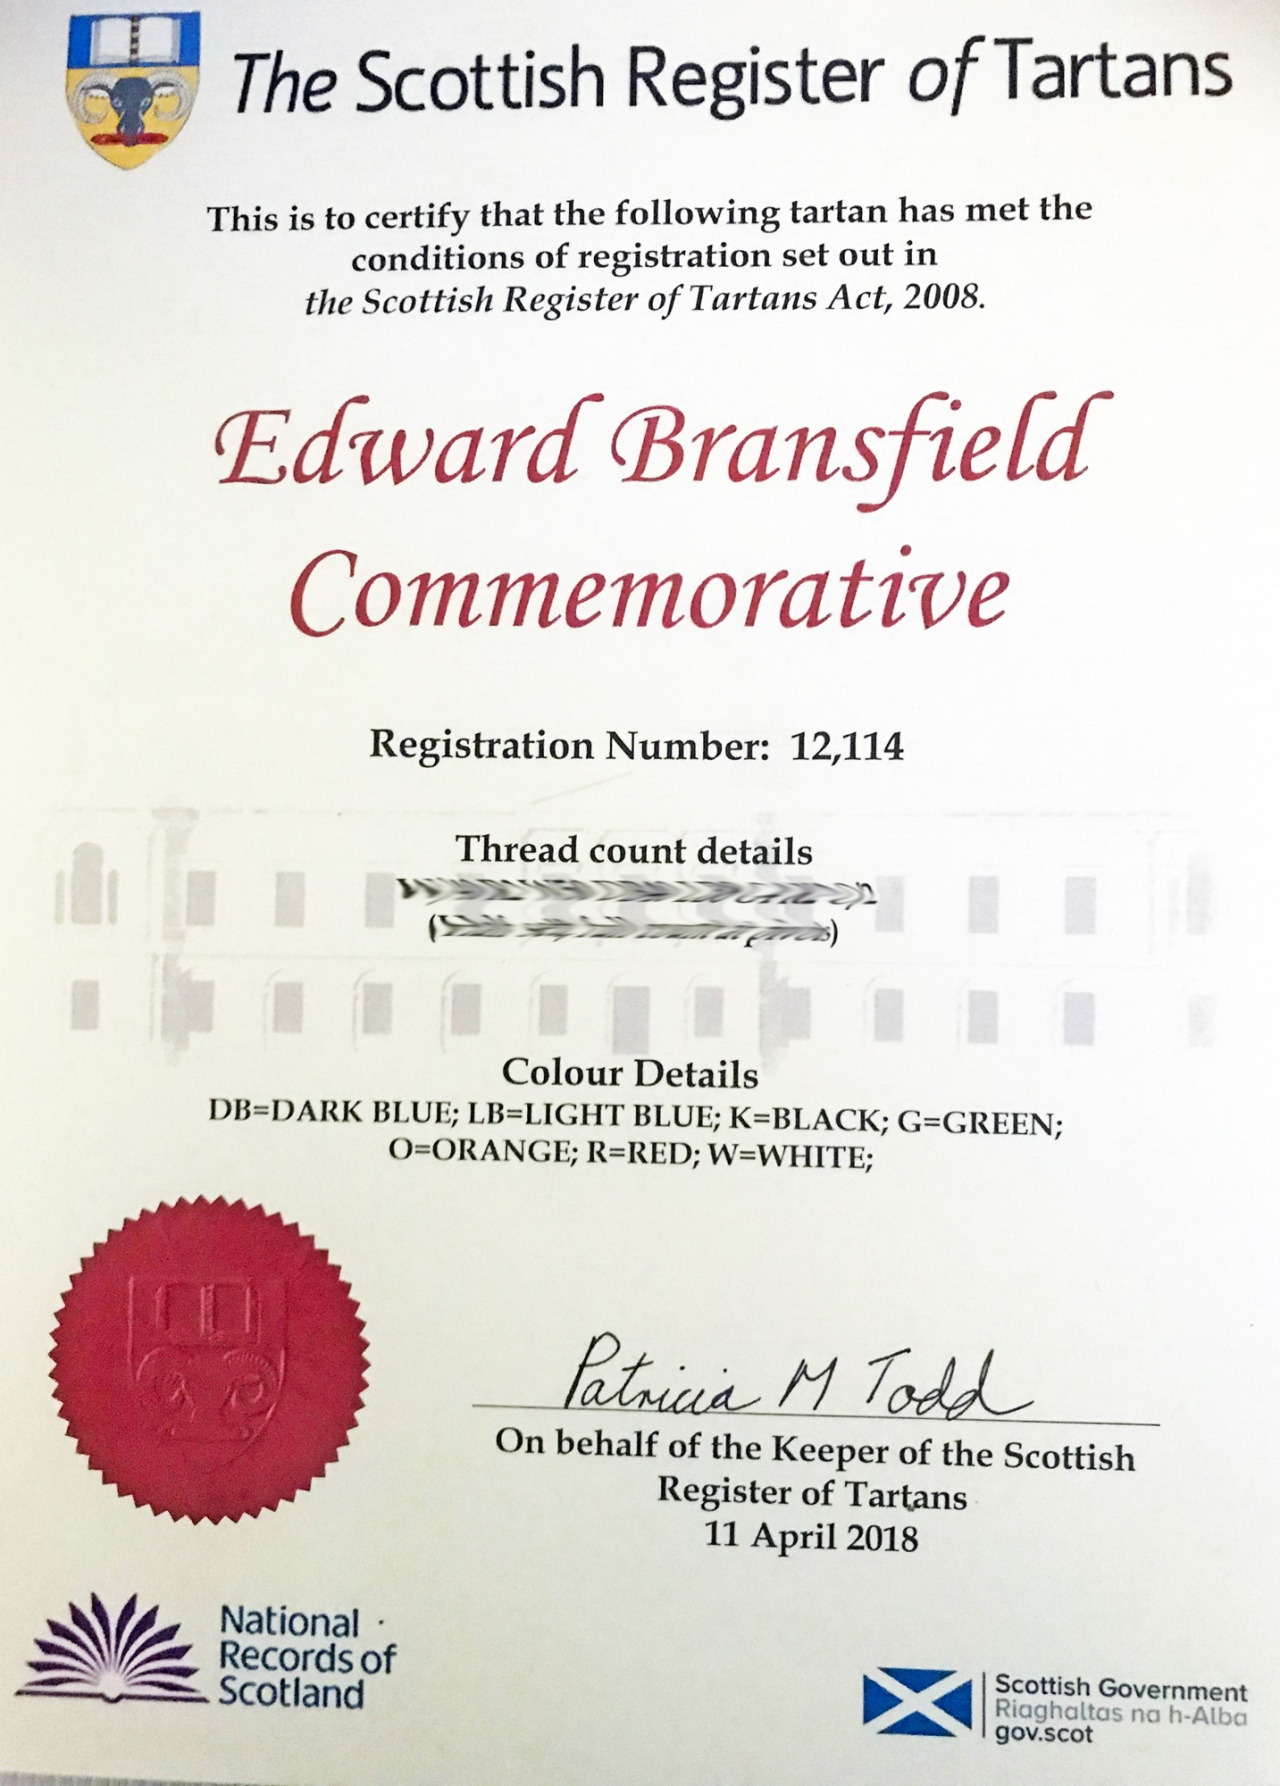 Bransfield-Commemorative-Tartan-Regristration-Cert-April-2018